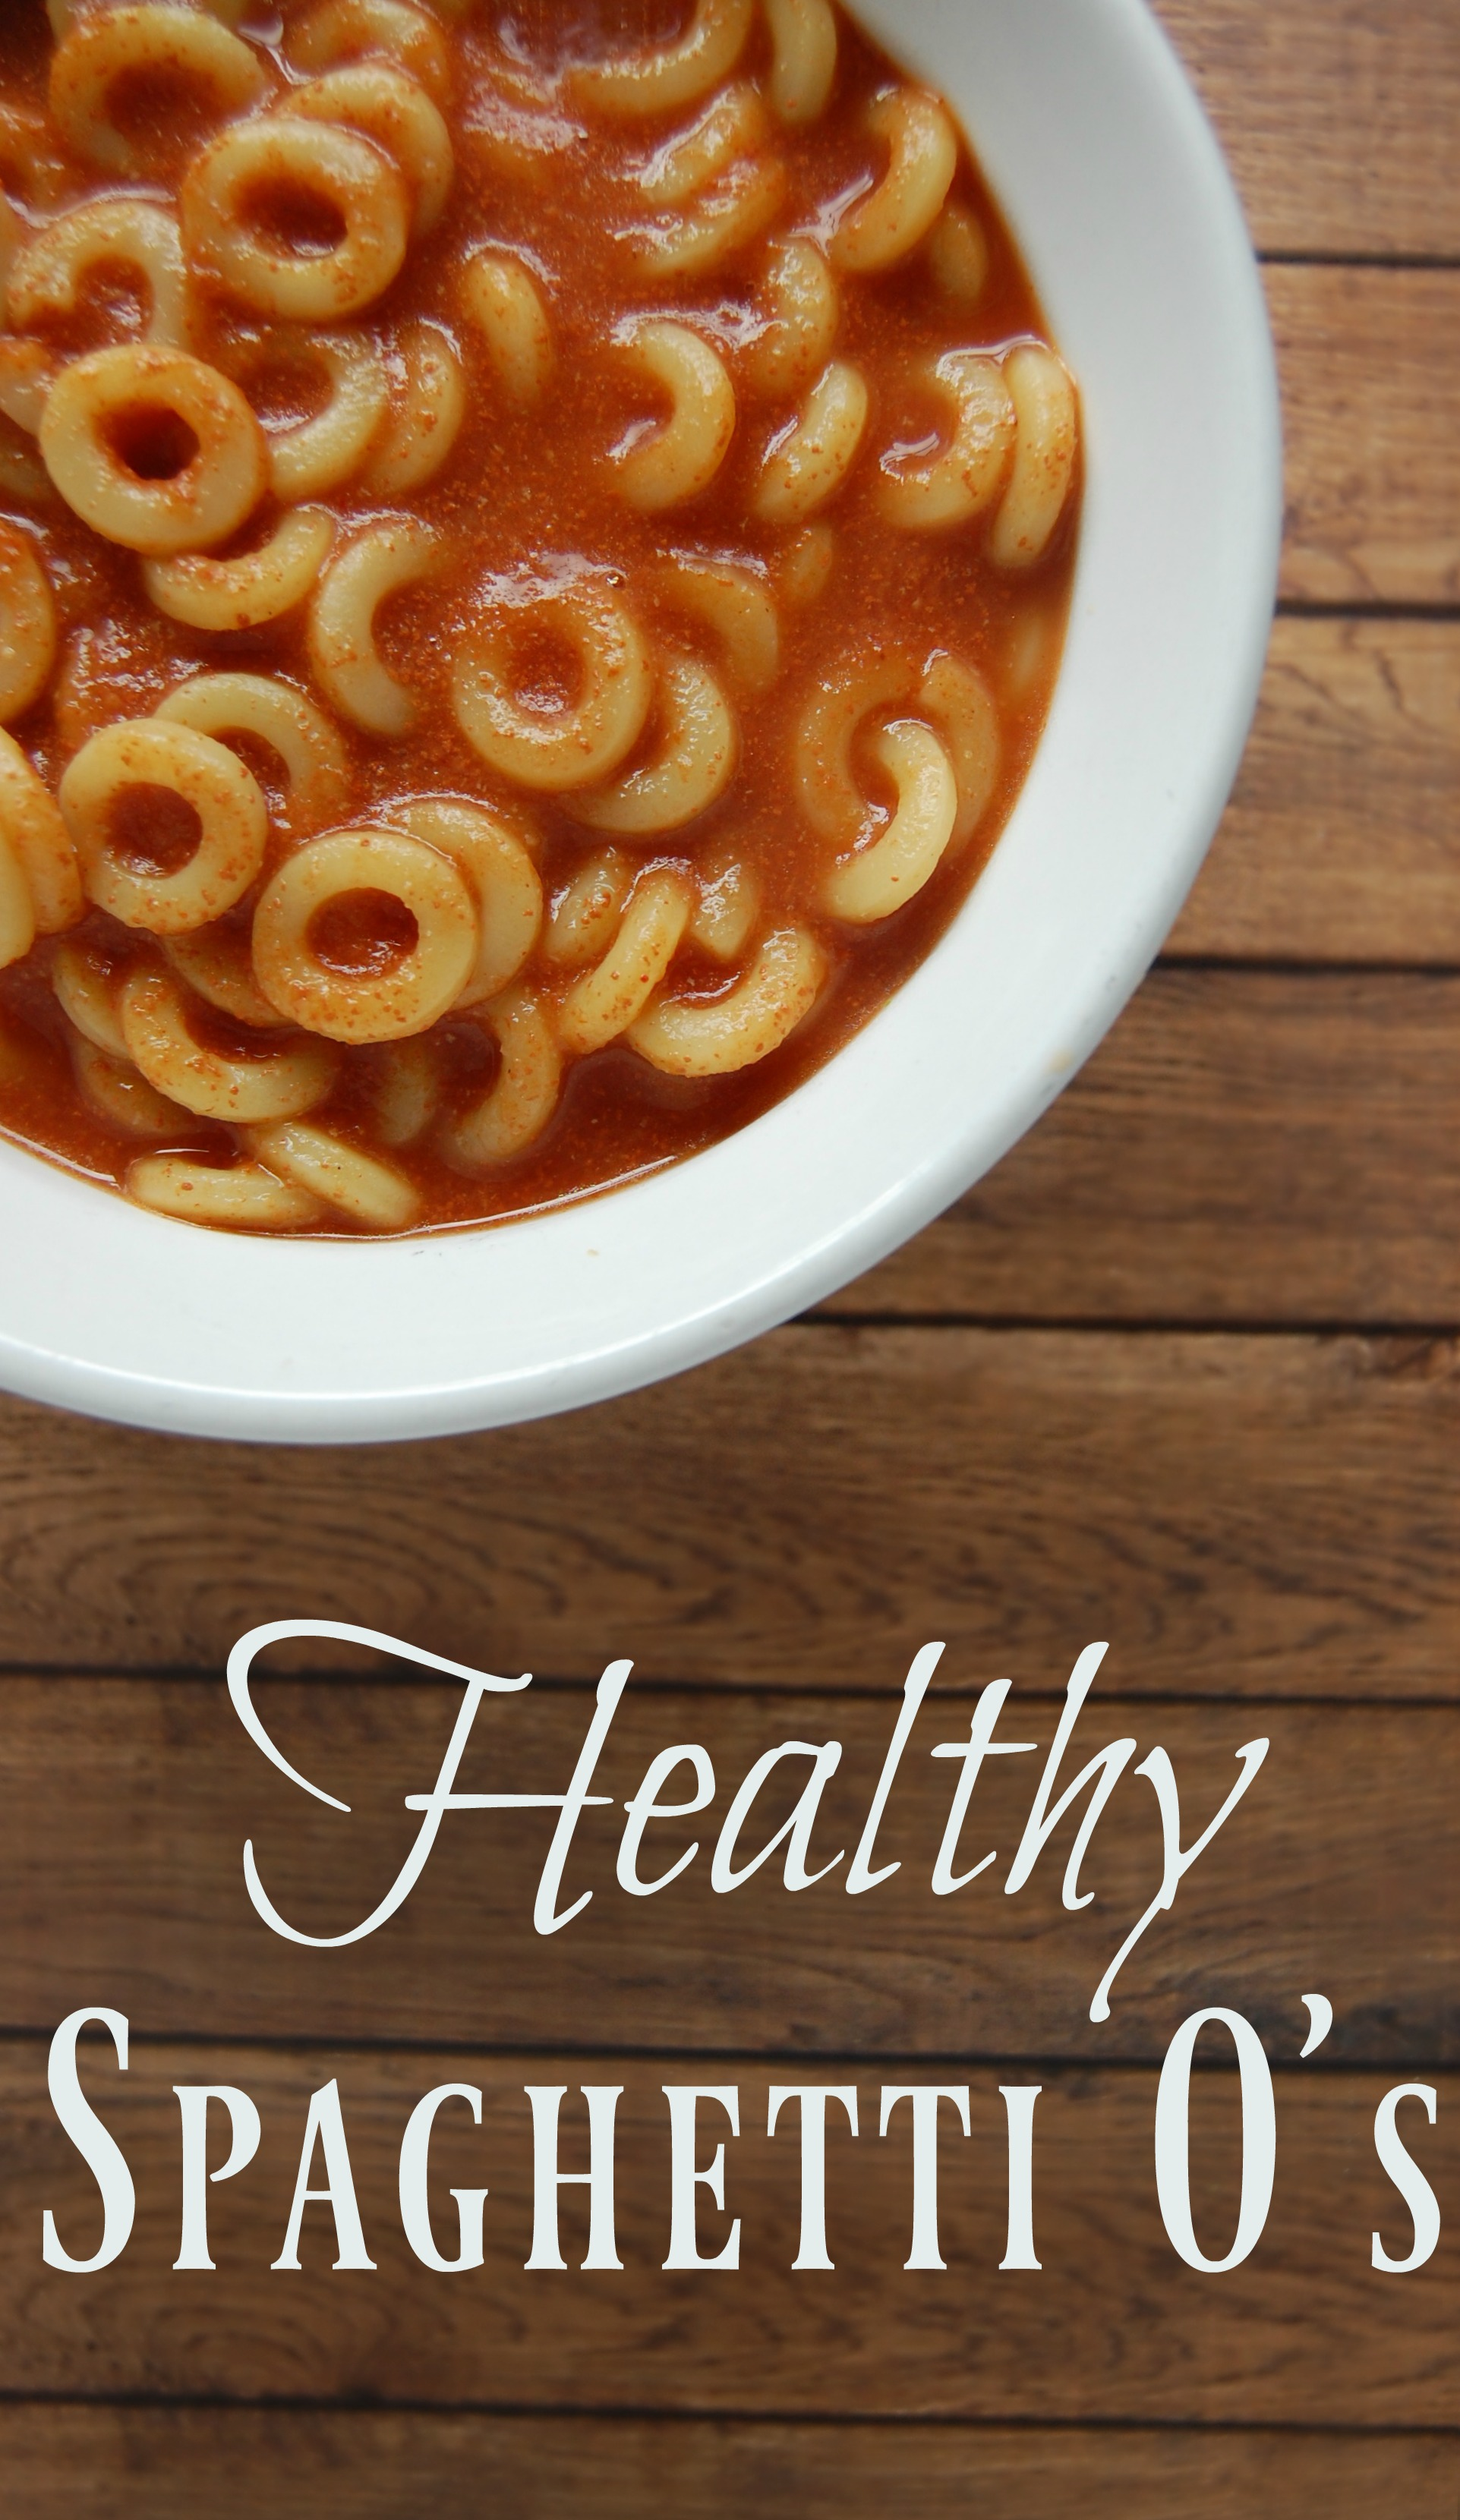 Healthy Spaghetti O's - Awesome! Let your kids have Spaghetti O's! No guilt here with this BPA free, HFCS free, real food spaghetti o recipe! You can even make it dairy free!